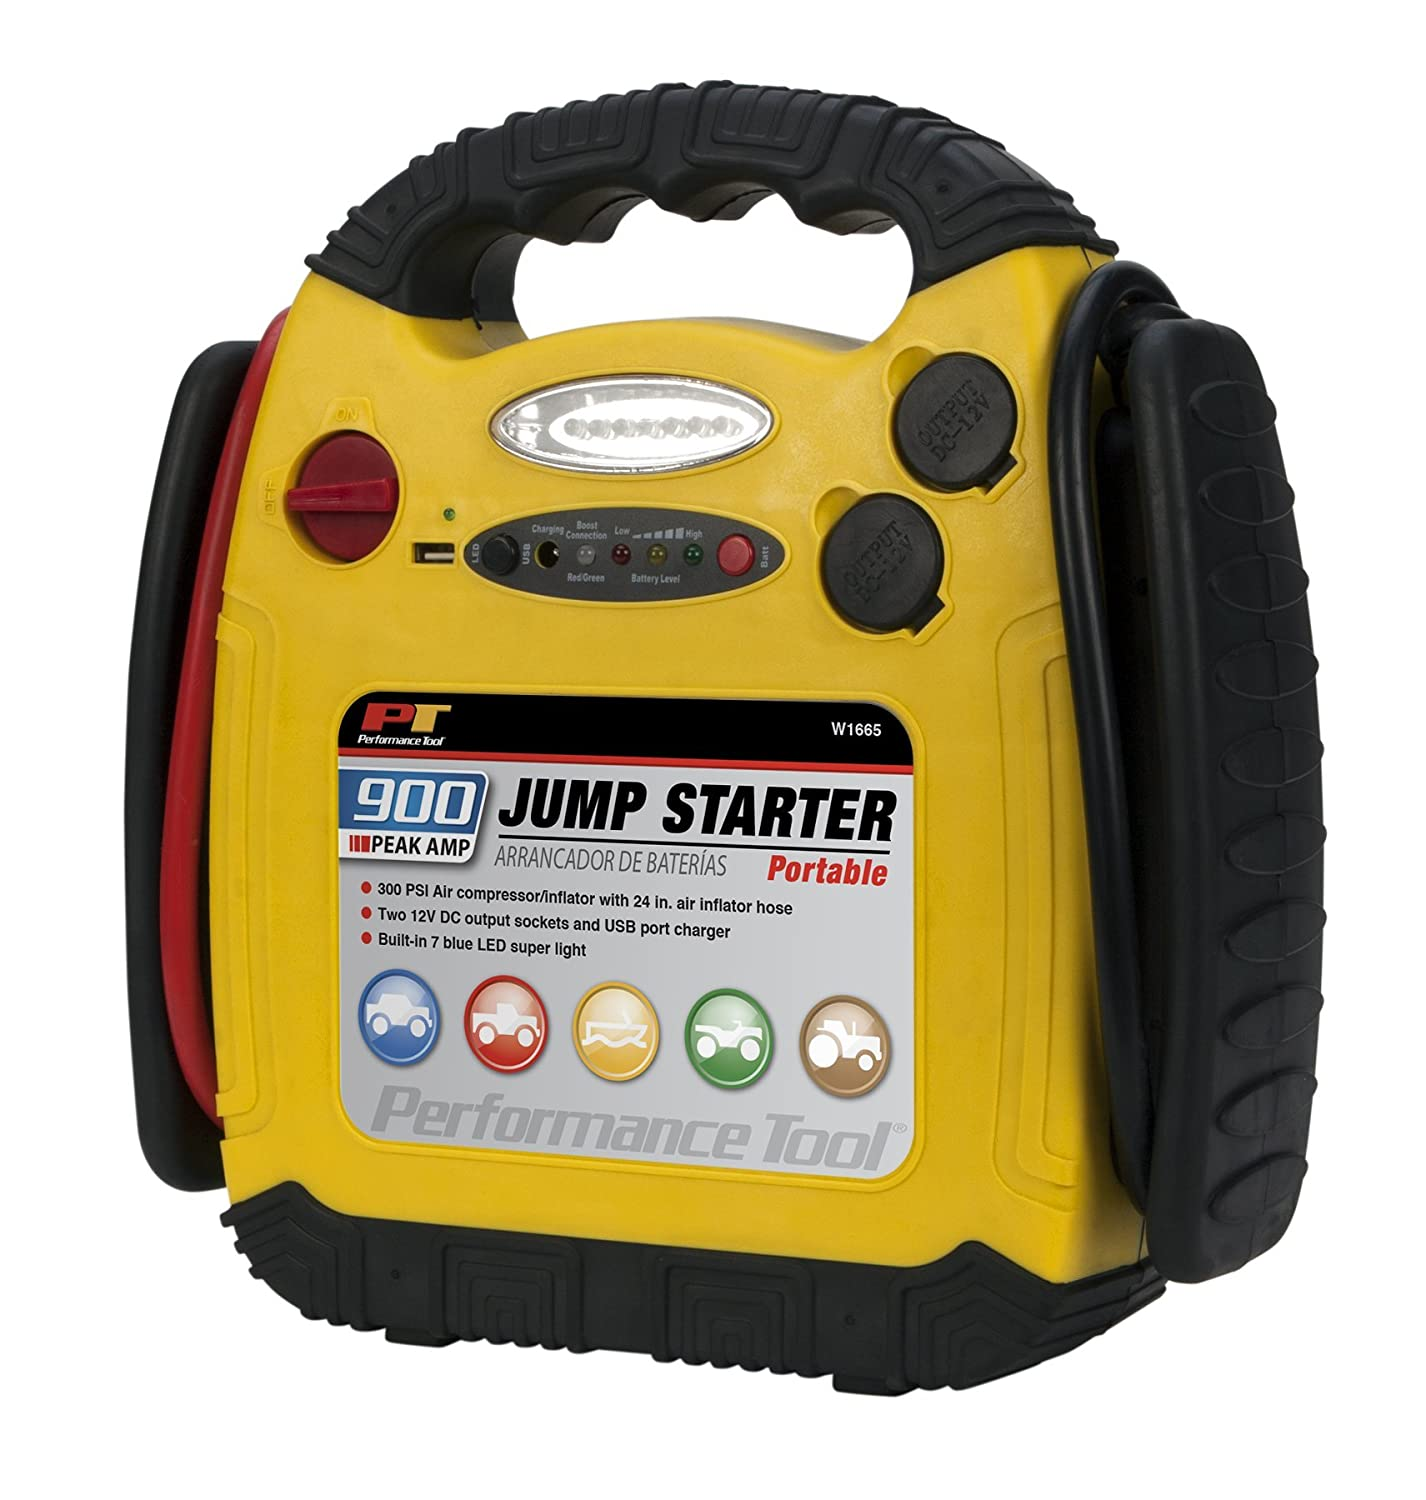 Amazon.com: Performance Tool W1665 900 Amp Jump Starter, Inflator and  Portable Power Unit: Automotive